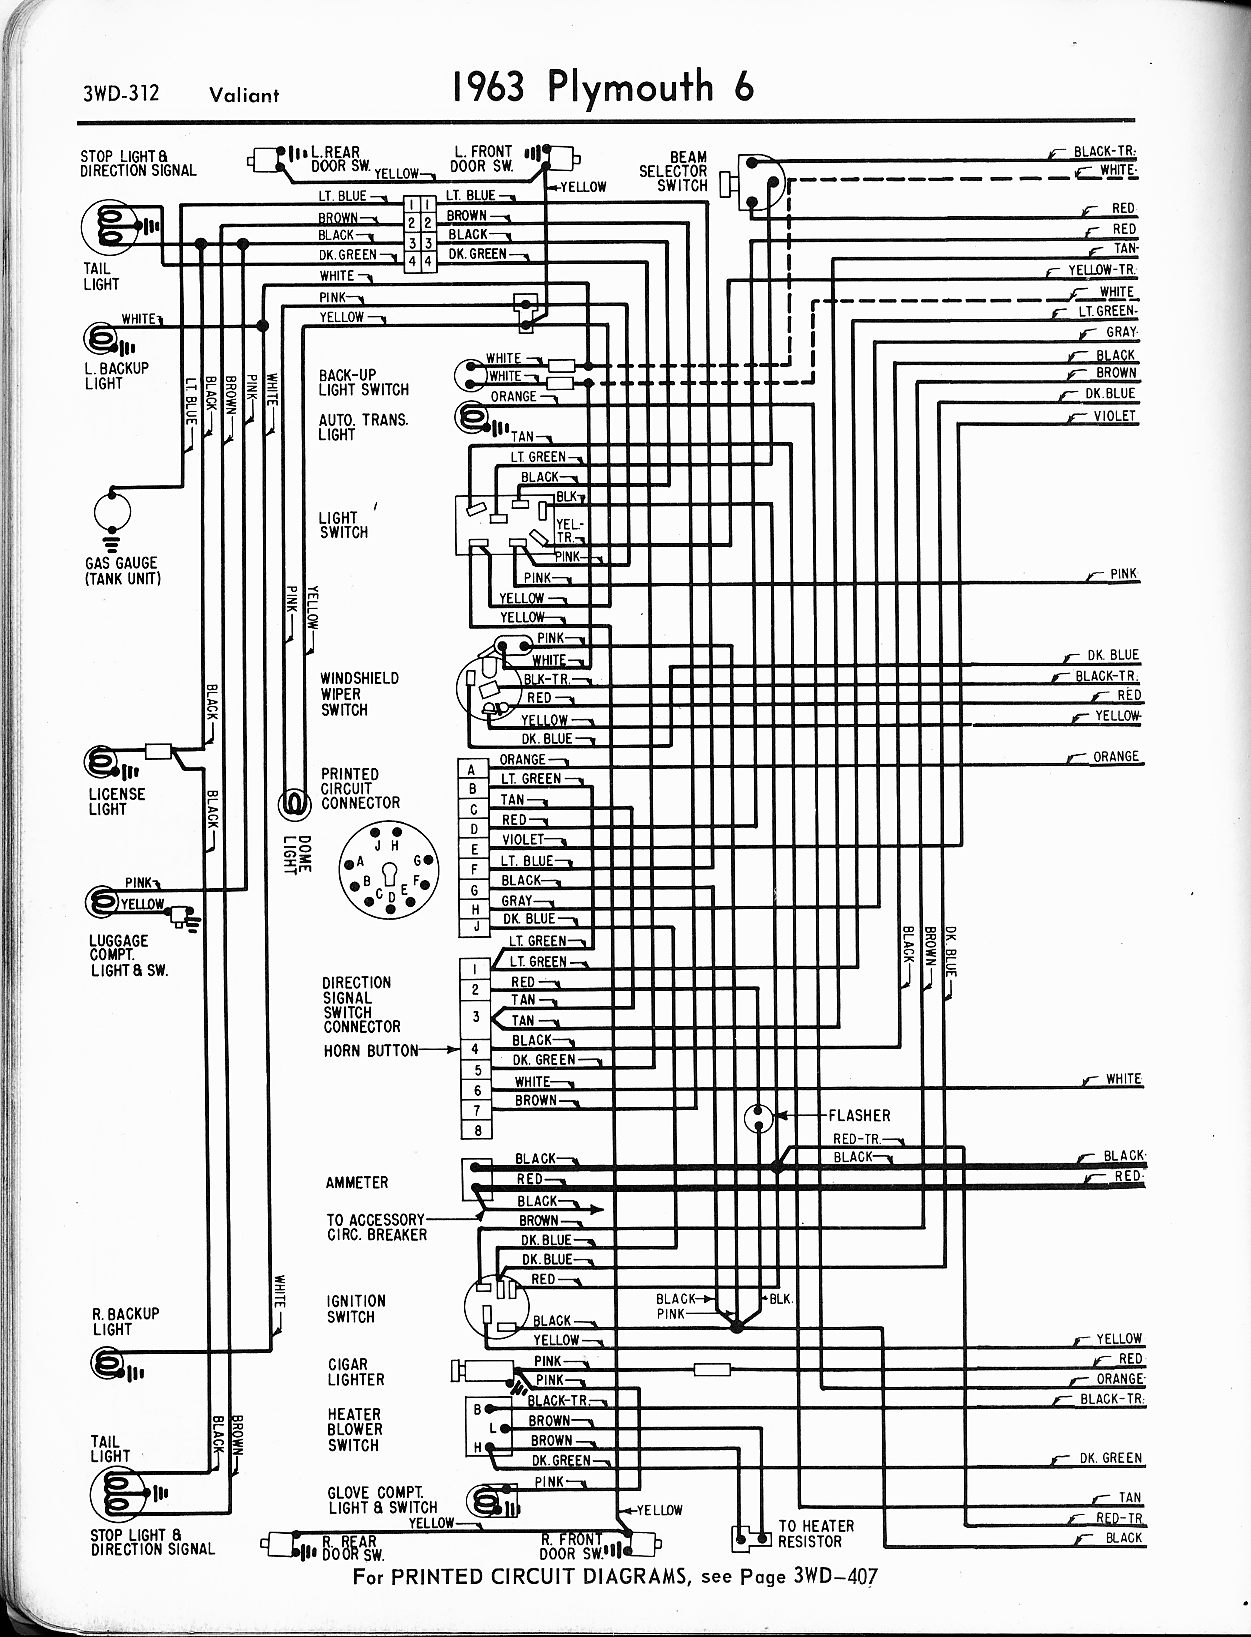 MWire5765 312 1956 1965 plymouth wiring the old car manual project 64 valiant wiring diagram at bayanpartner.co